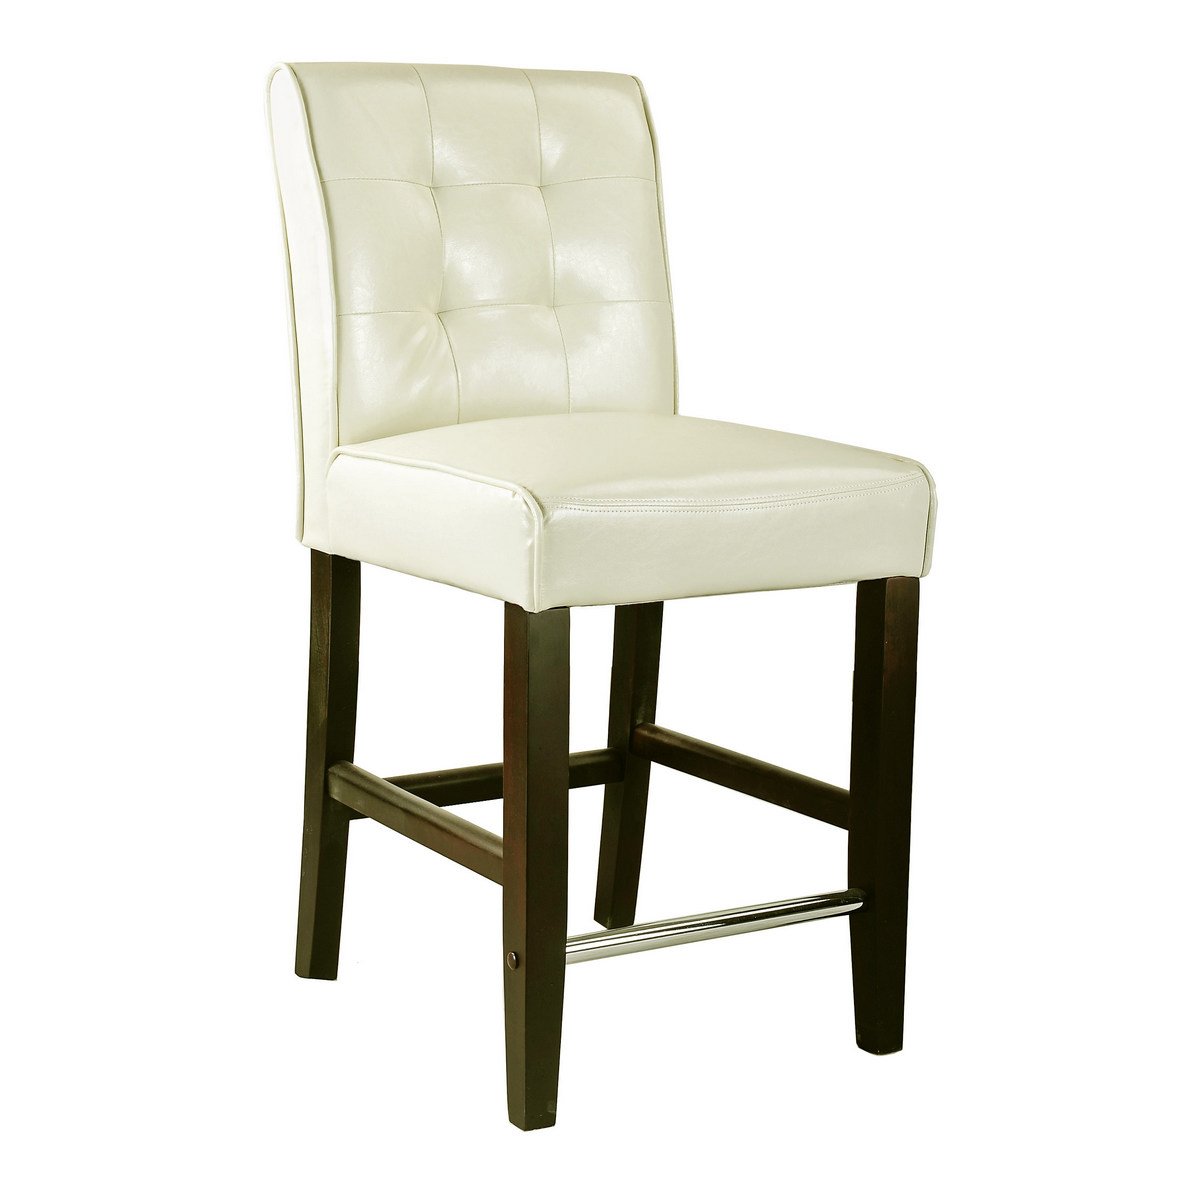 CorLiving DAD-414-B Antonio Counter Height Barstool in Cream White Bonded Leather